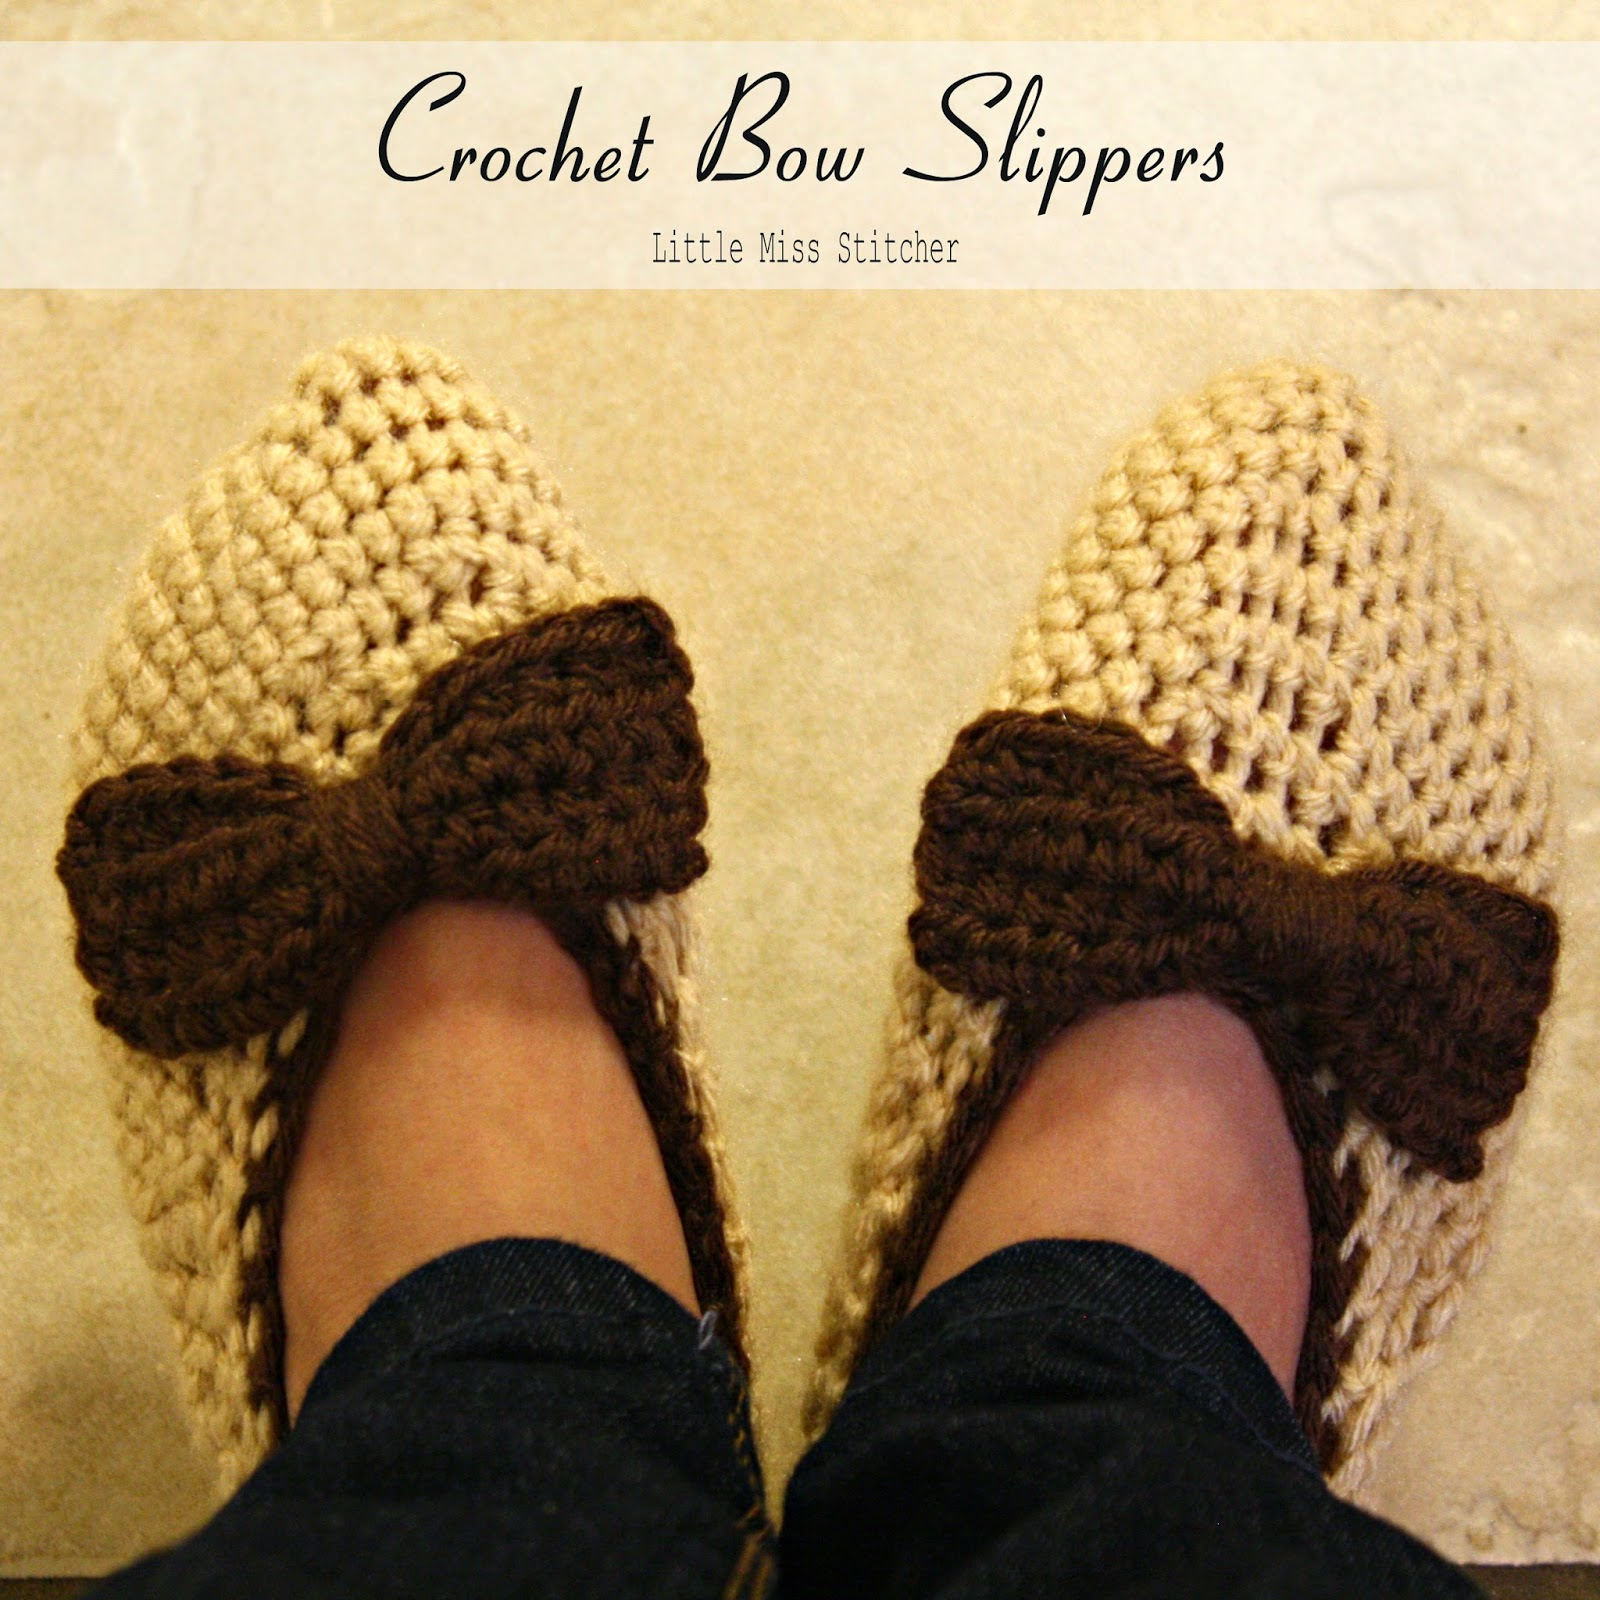 http://little-miss-stitcher.blogspot.com/2014/01/crochet-bow-slippers.html